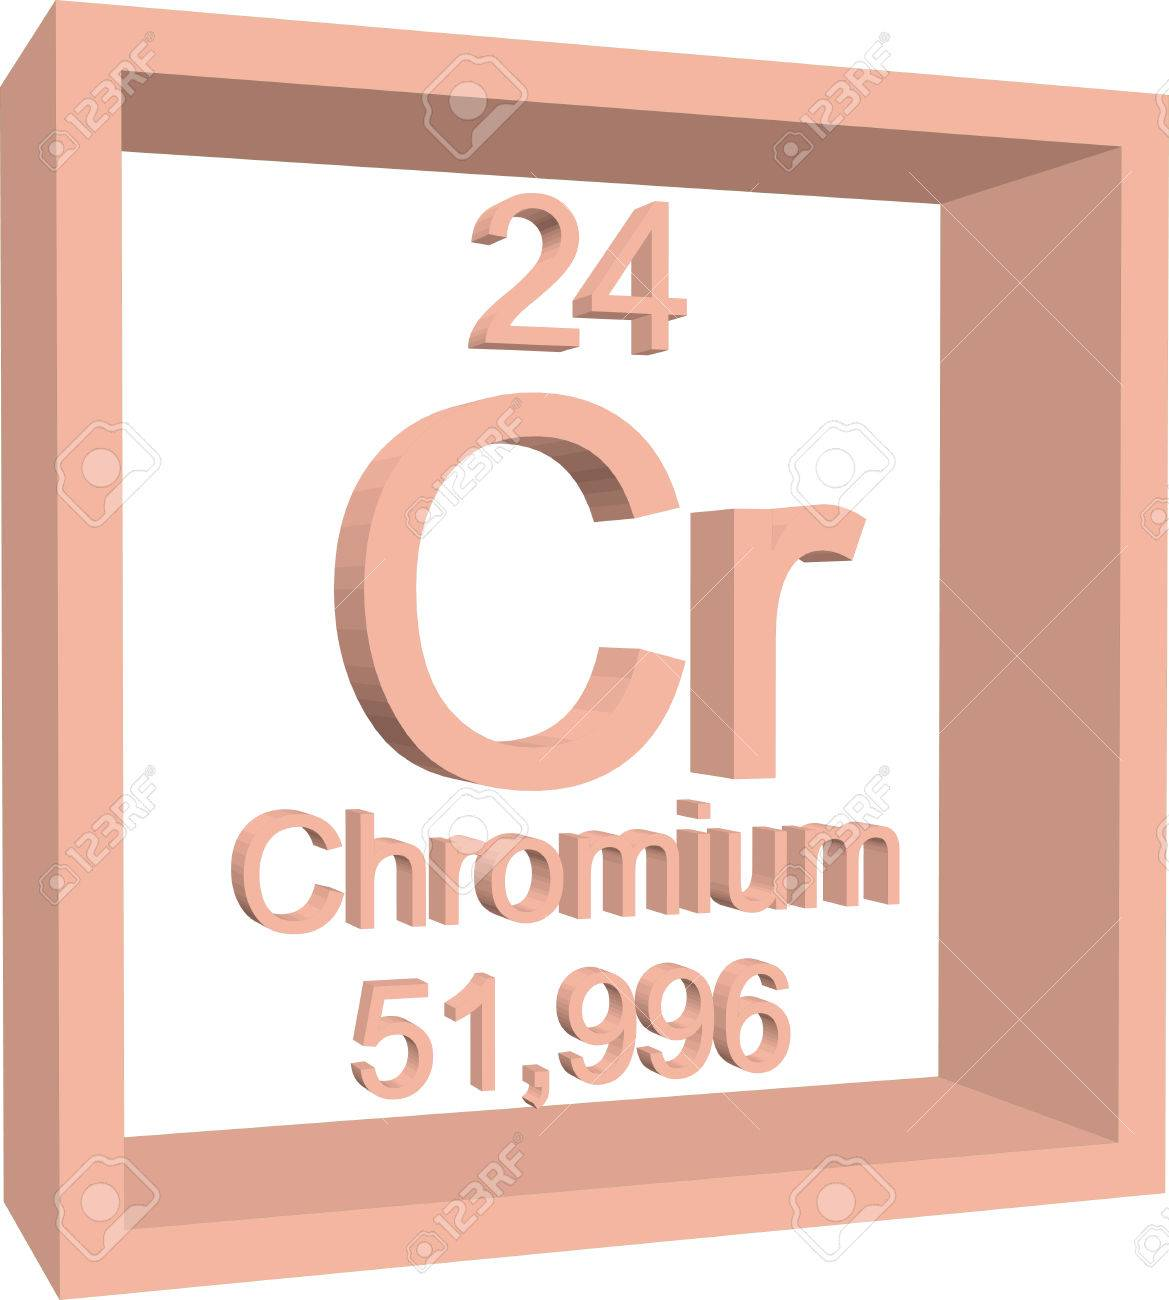 Uranium element periodic table images periodic table images periodic table of elements chromium royalty free cliparts periodic table of elements chromium stock vector 57969793 gamestrikefo Image collections